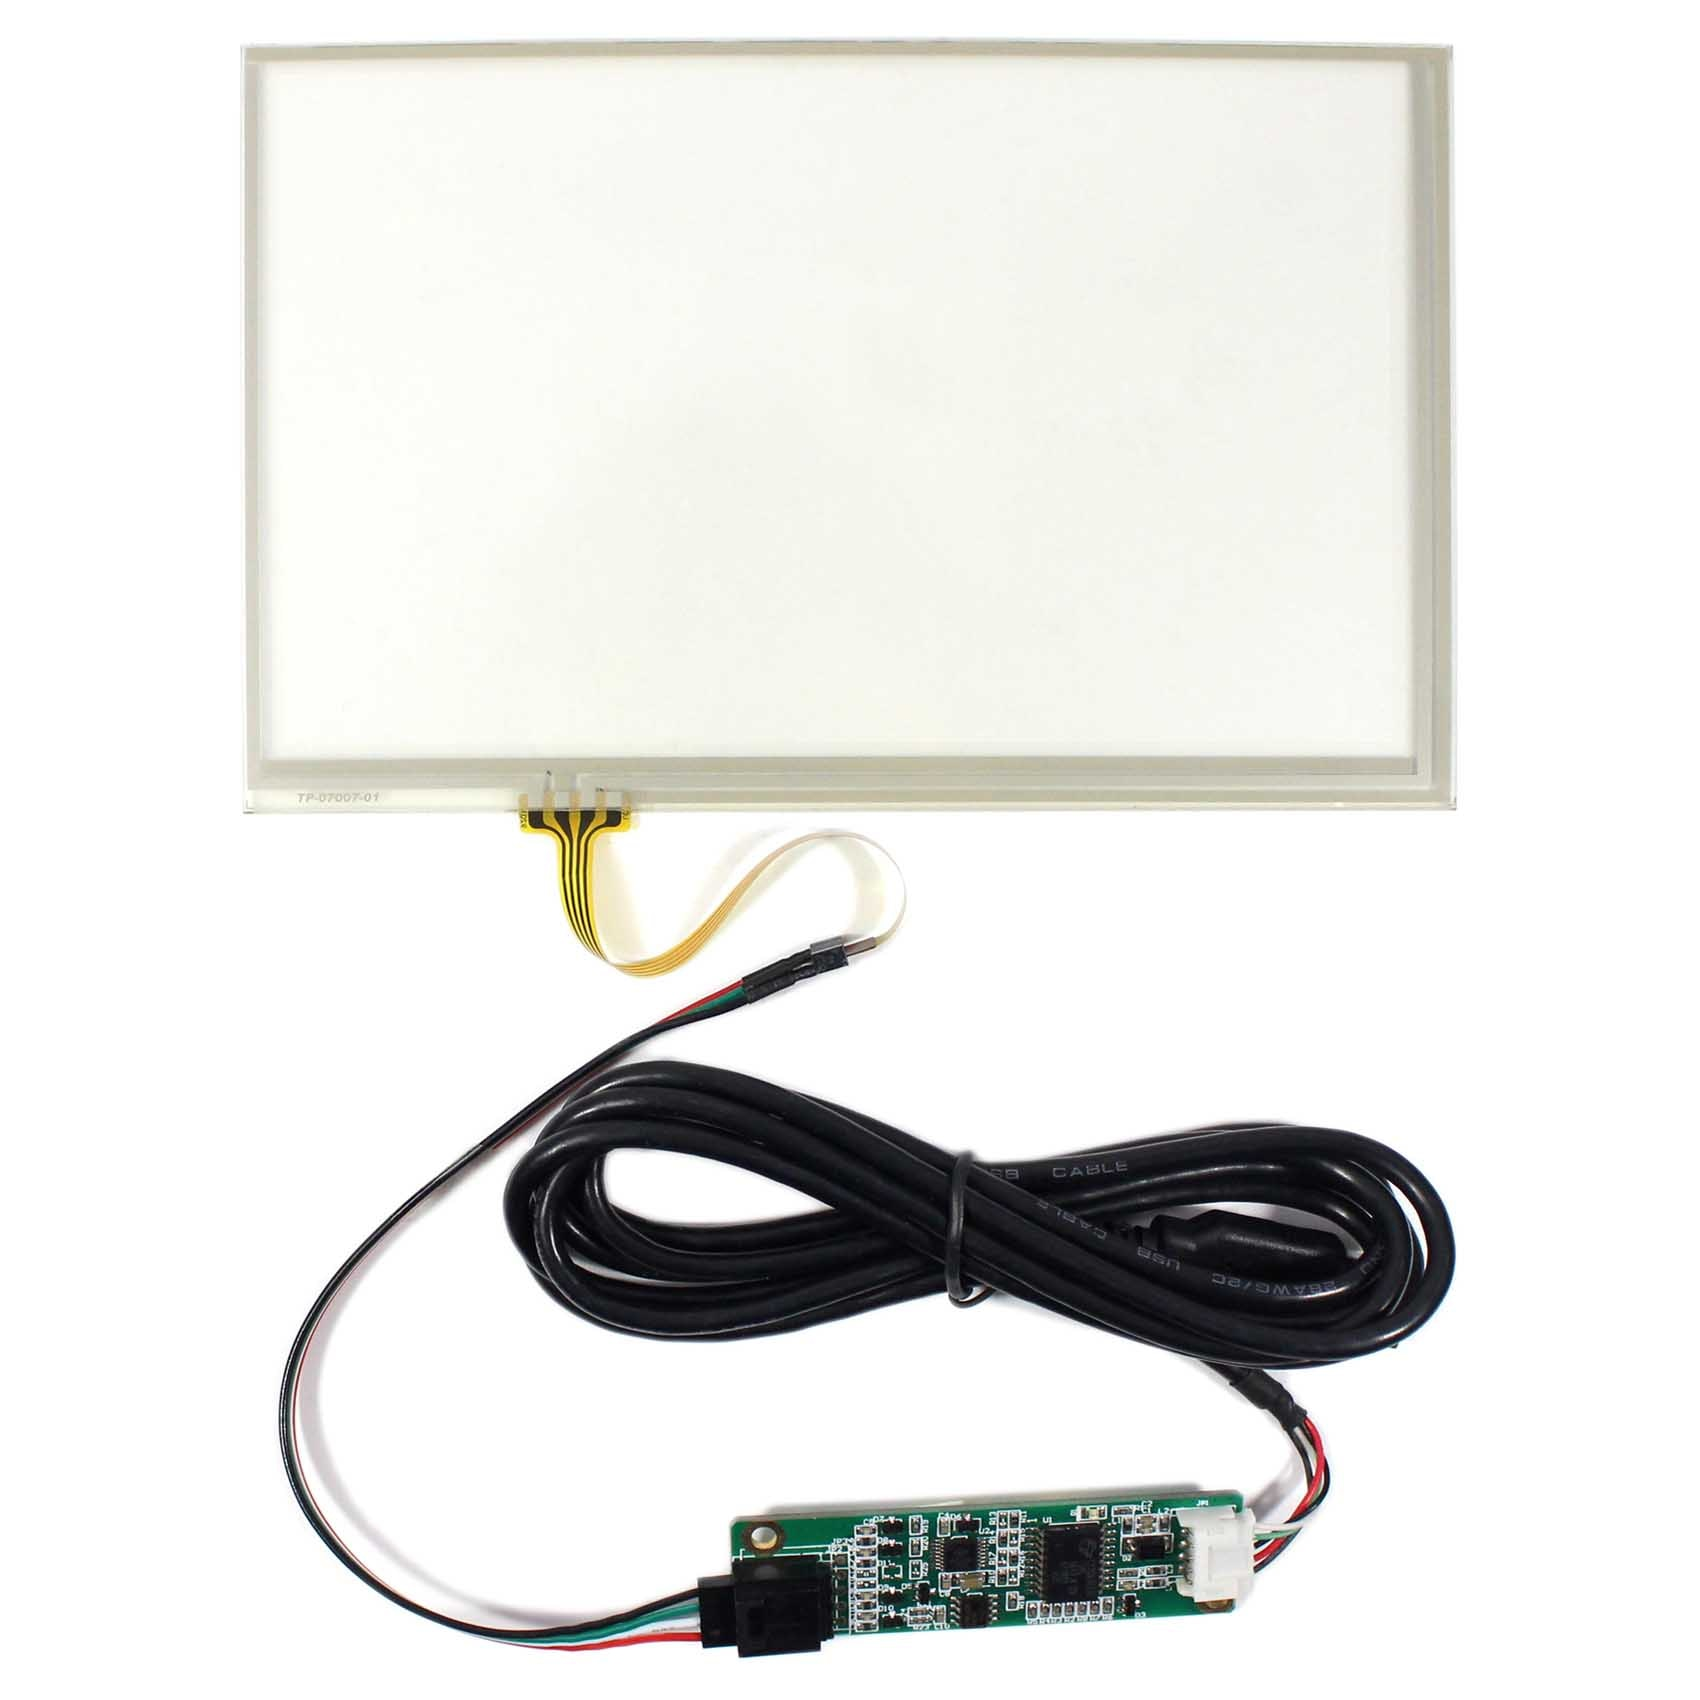 Touch Screen 7inch Touch Panel 165mm x 104mm 4-wire USB Controller Card